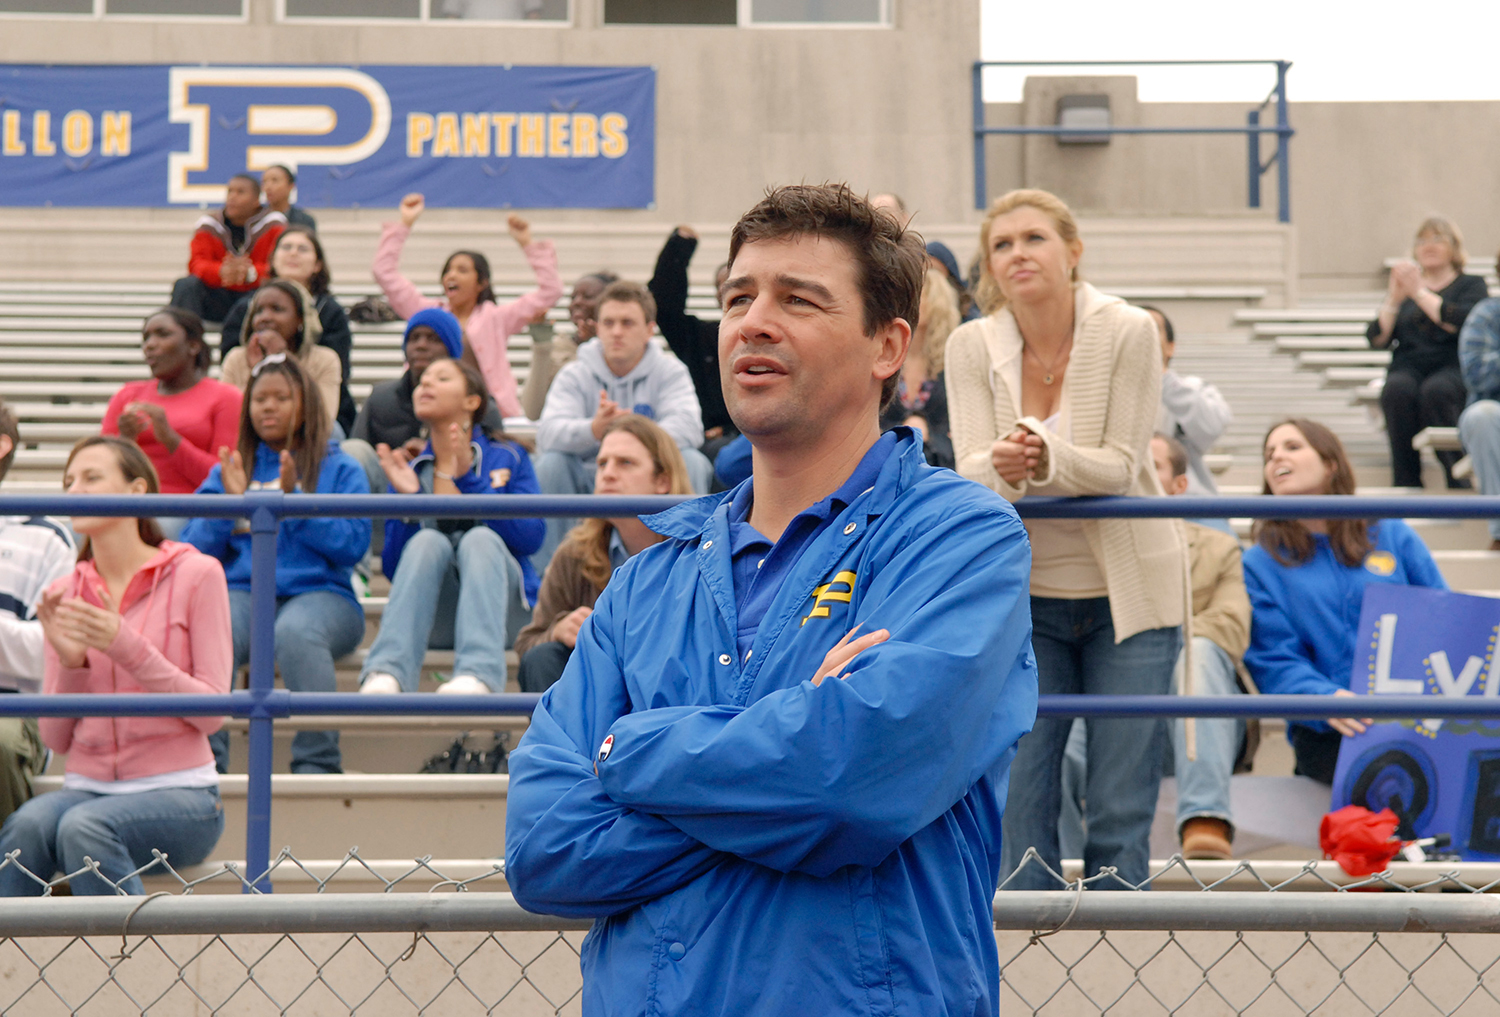 Coach Taylor from Friday Night Lights